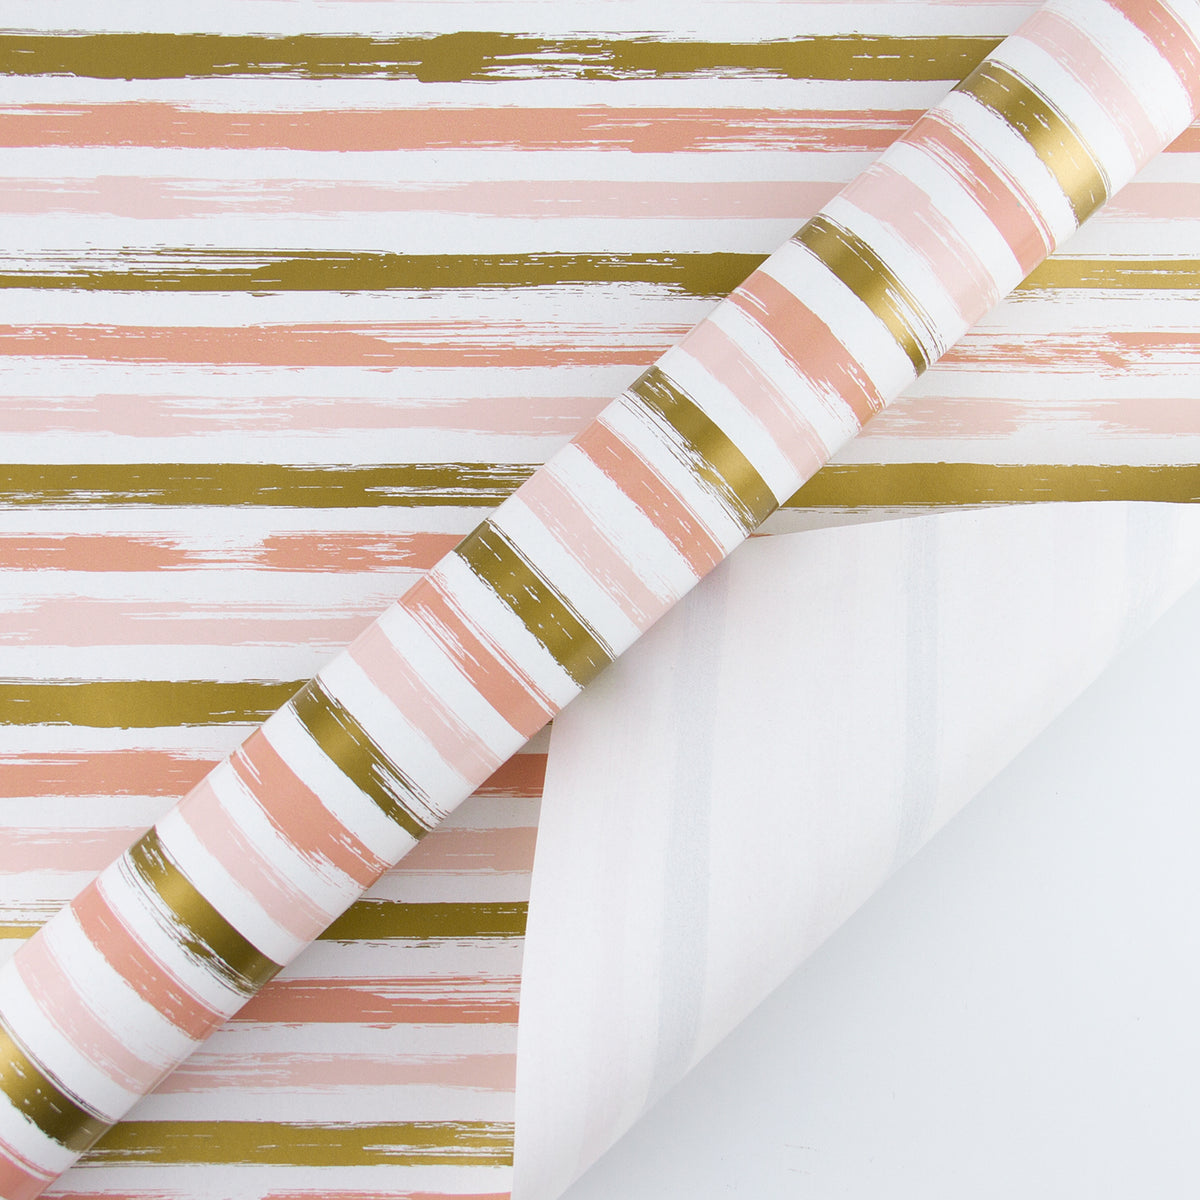 Wrapaholic-Pink-and-Gold Lines-Print-Gift-Wrapping-Paper-Roll-3